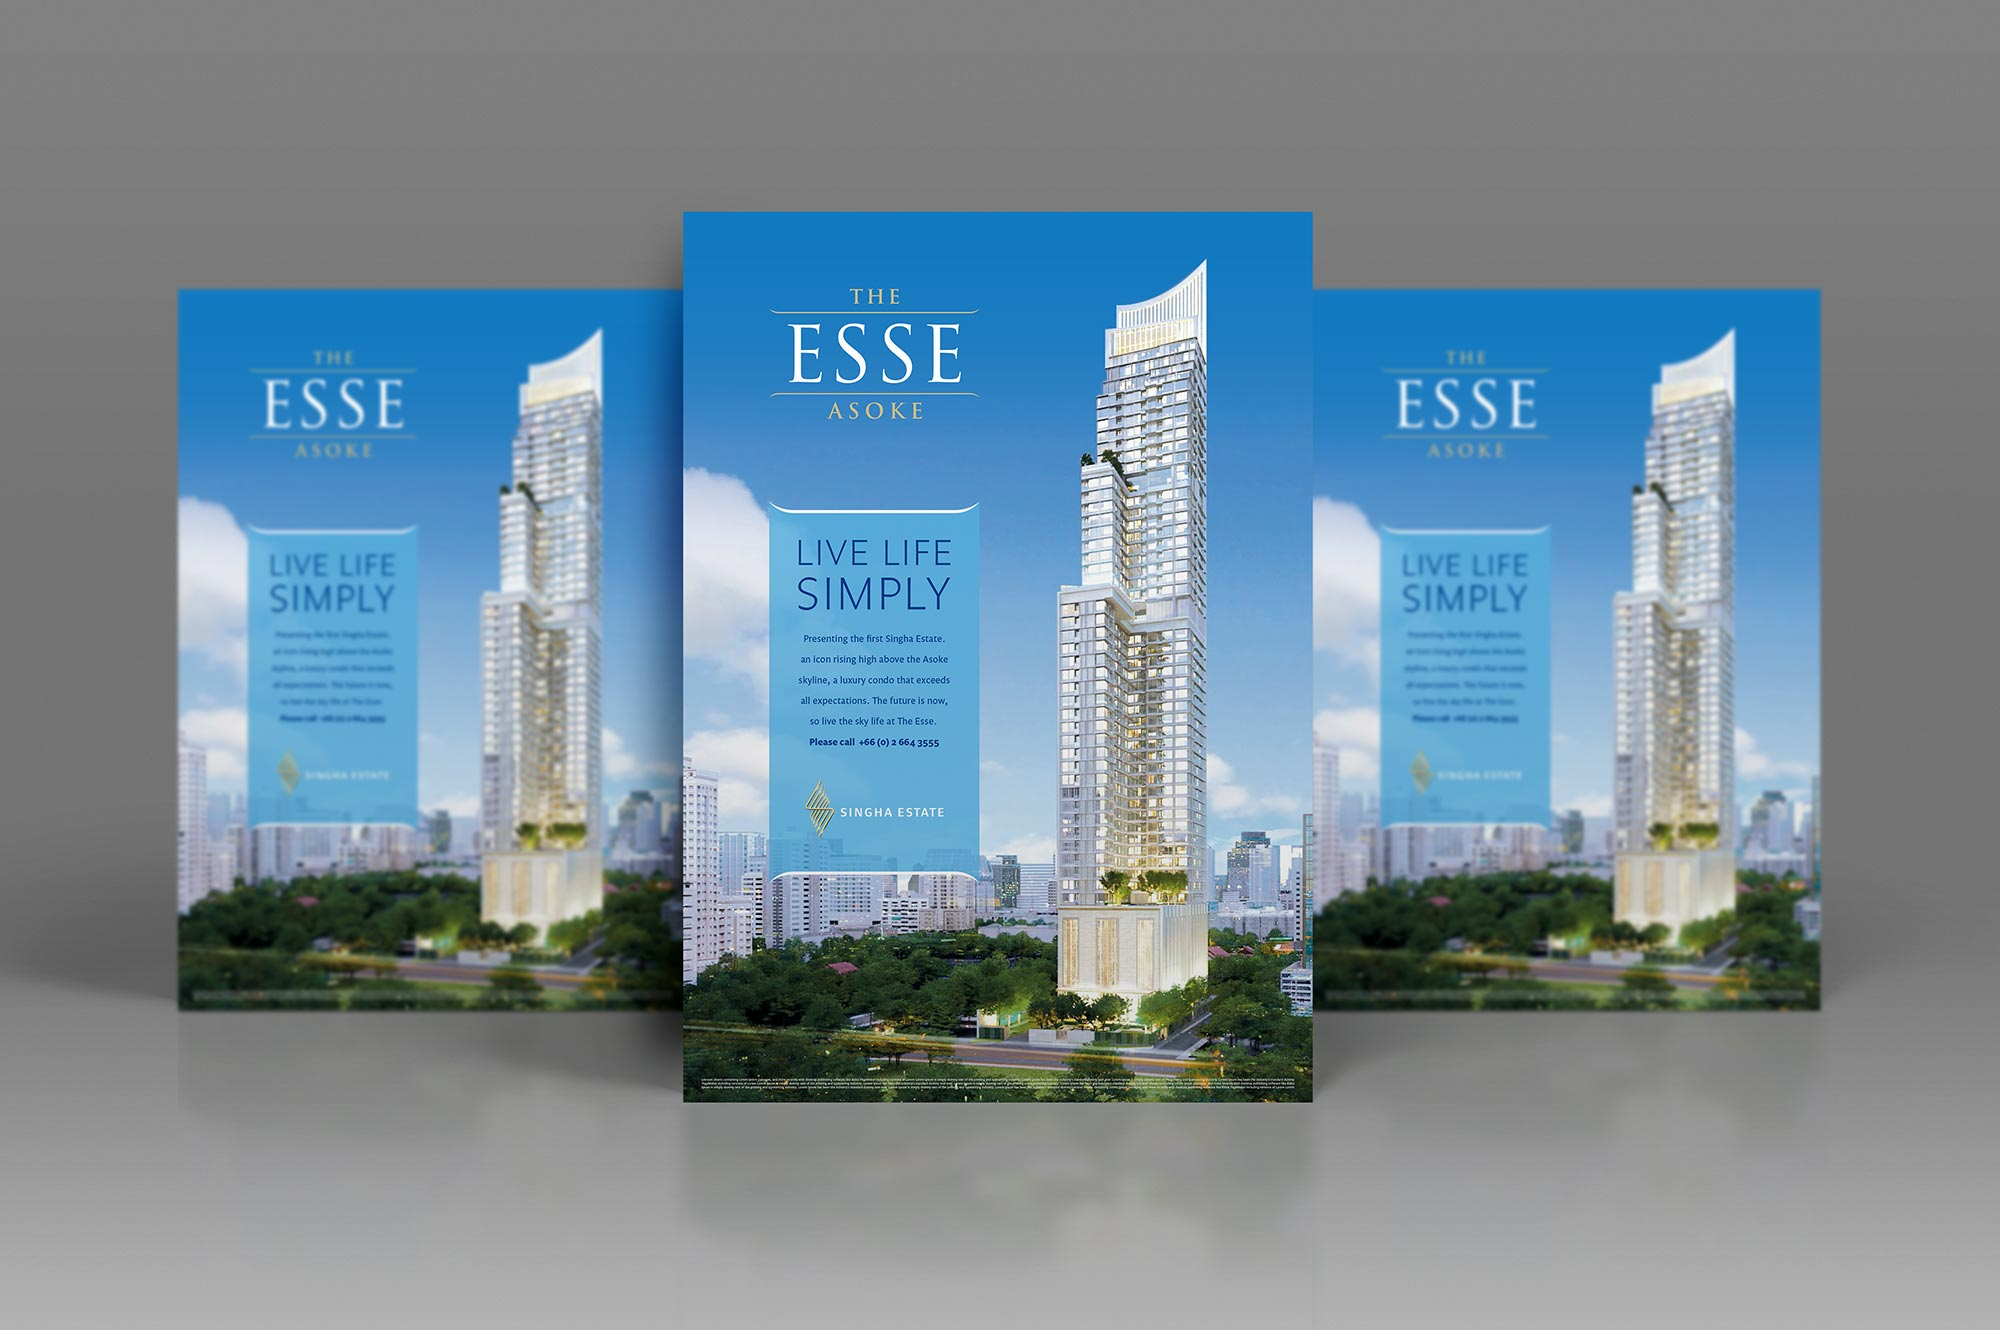 The ESSE Asoke Poster Design